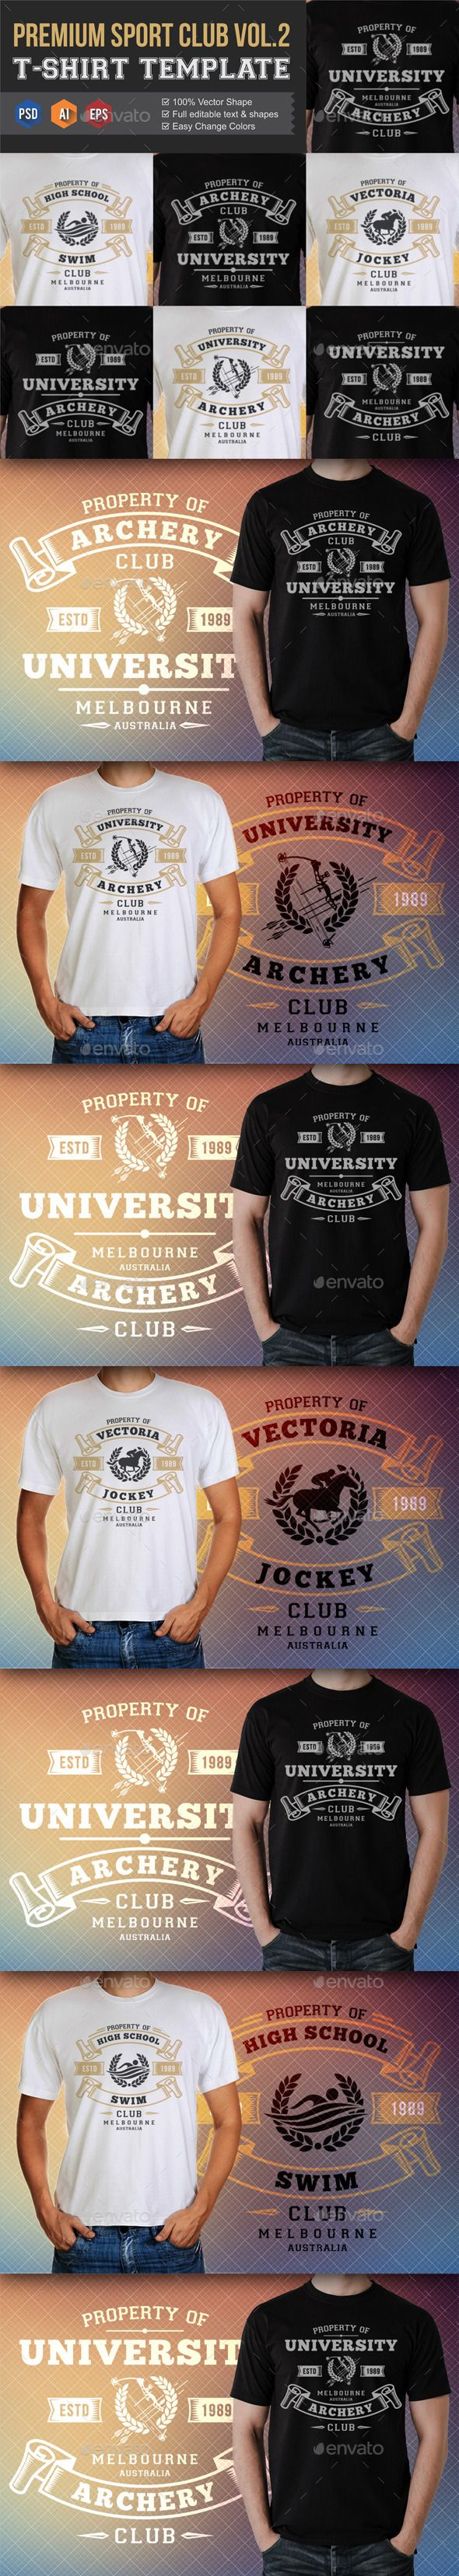 the 46 best t shirt graphic design images on pinterest shirt